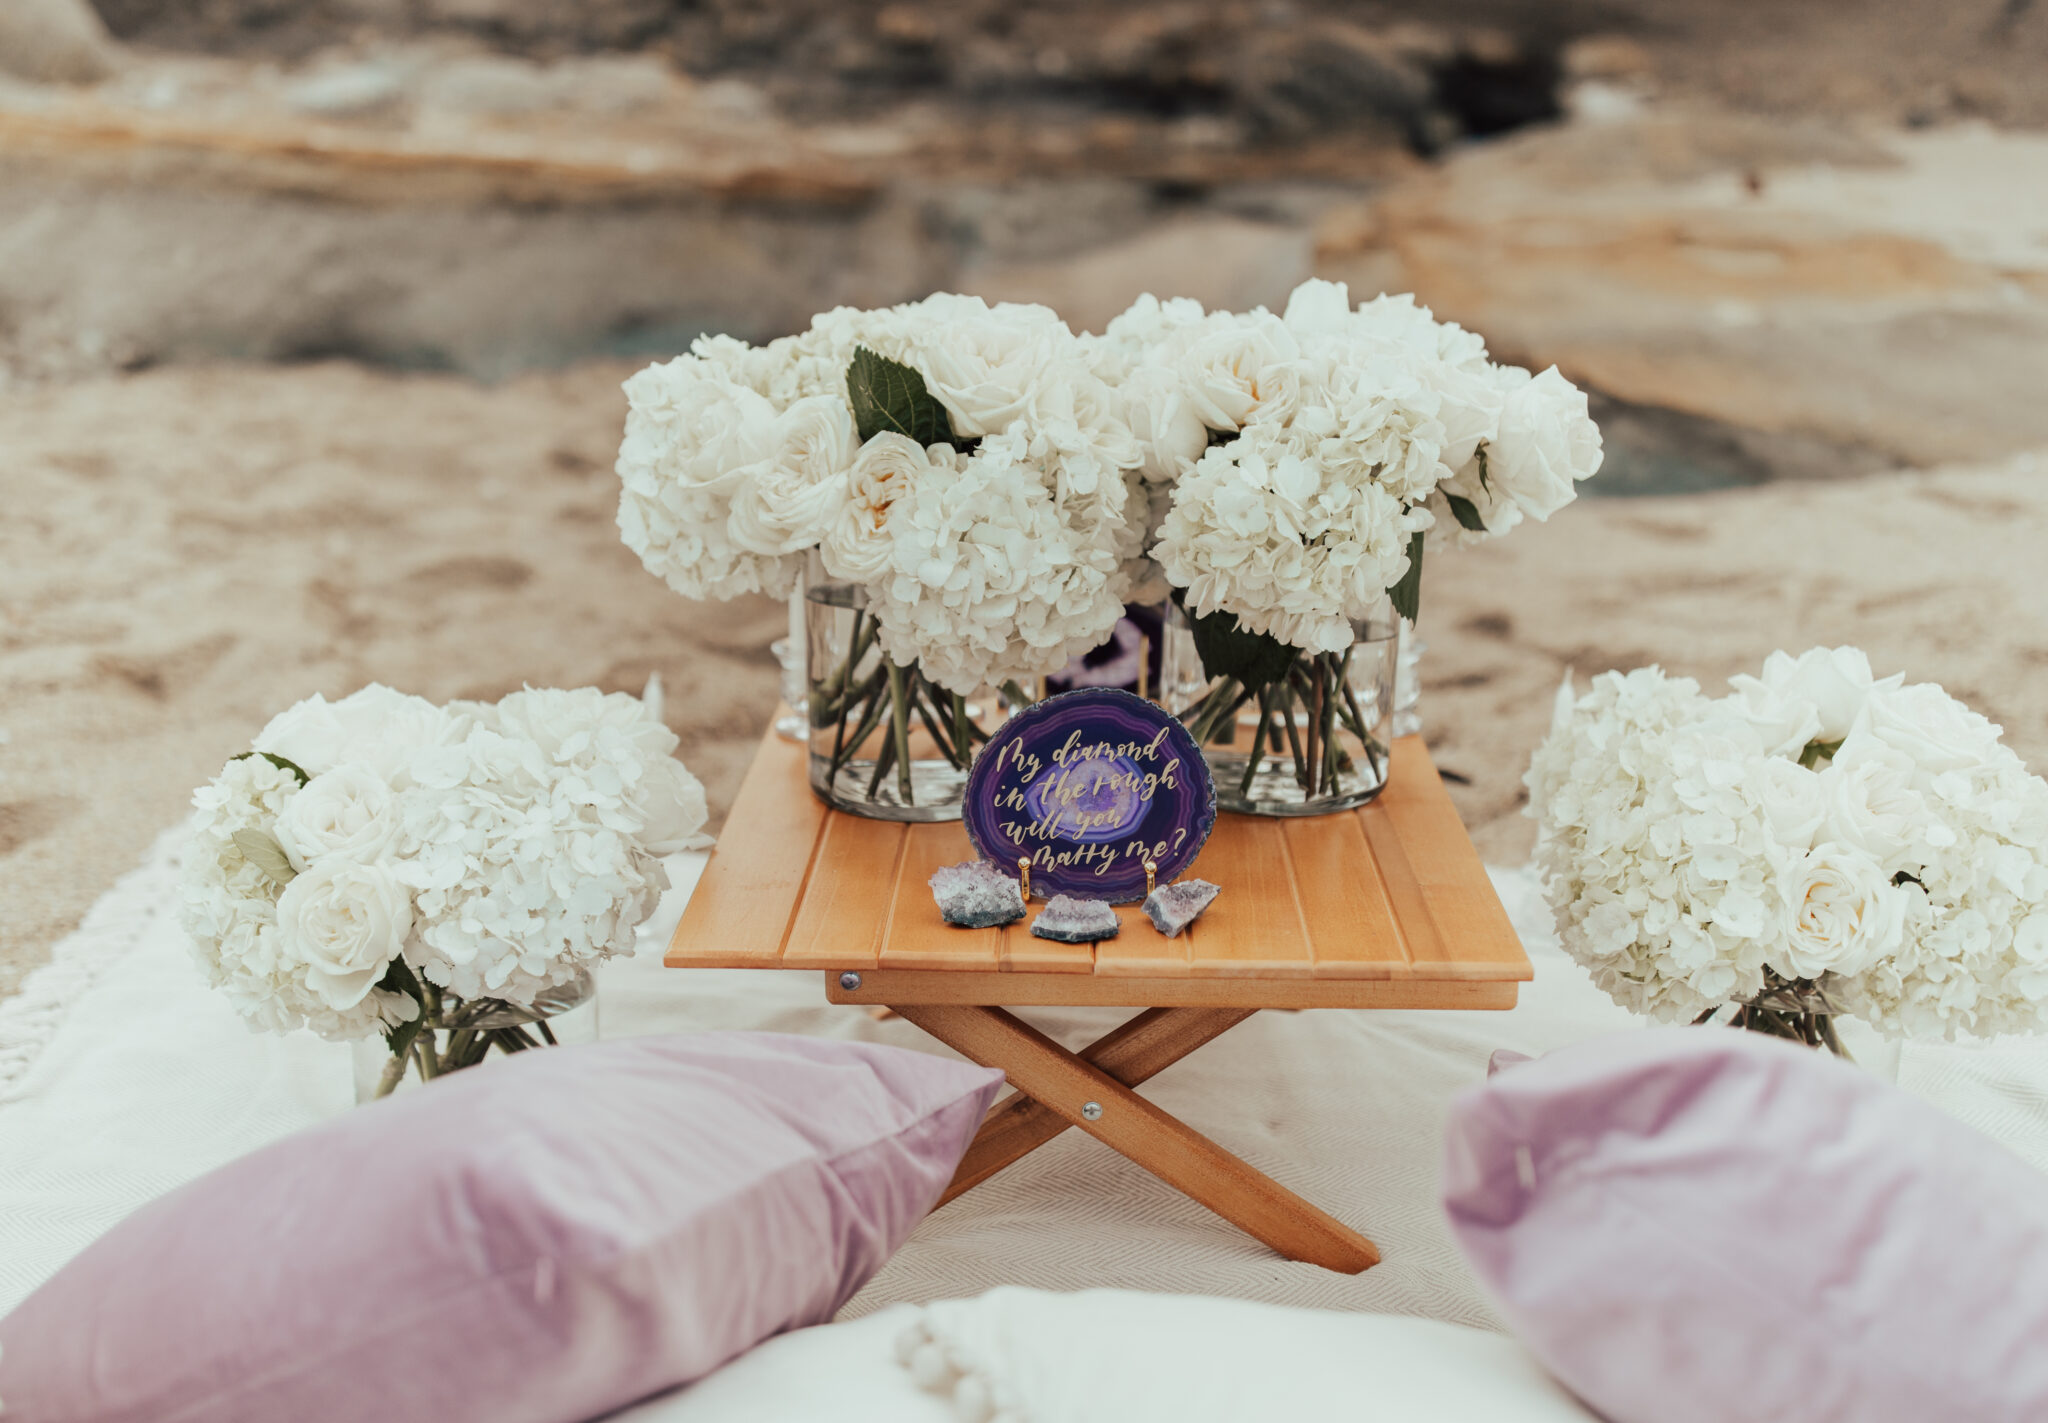 purple geode proposal at the beach